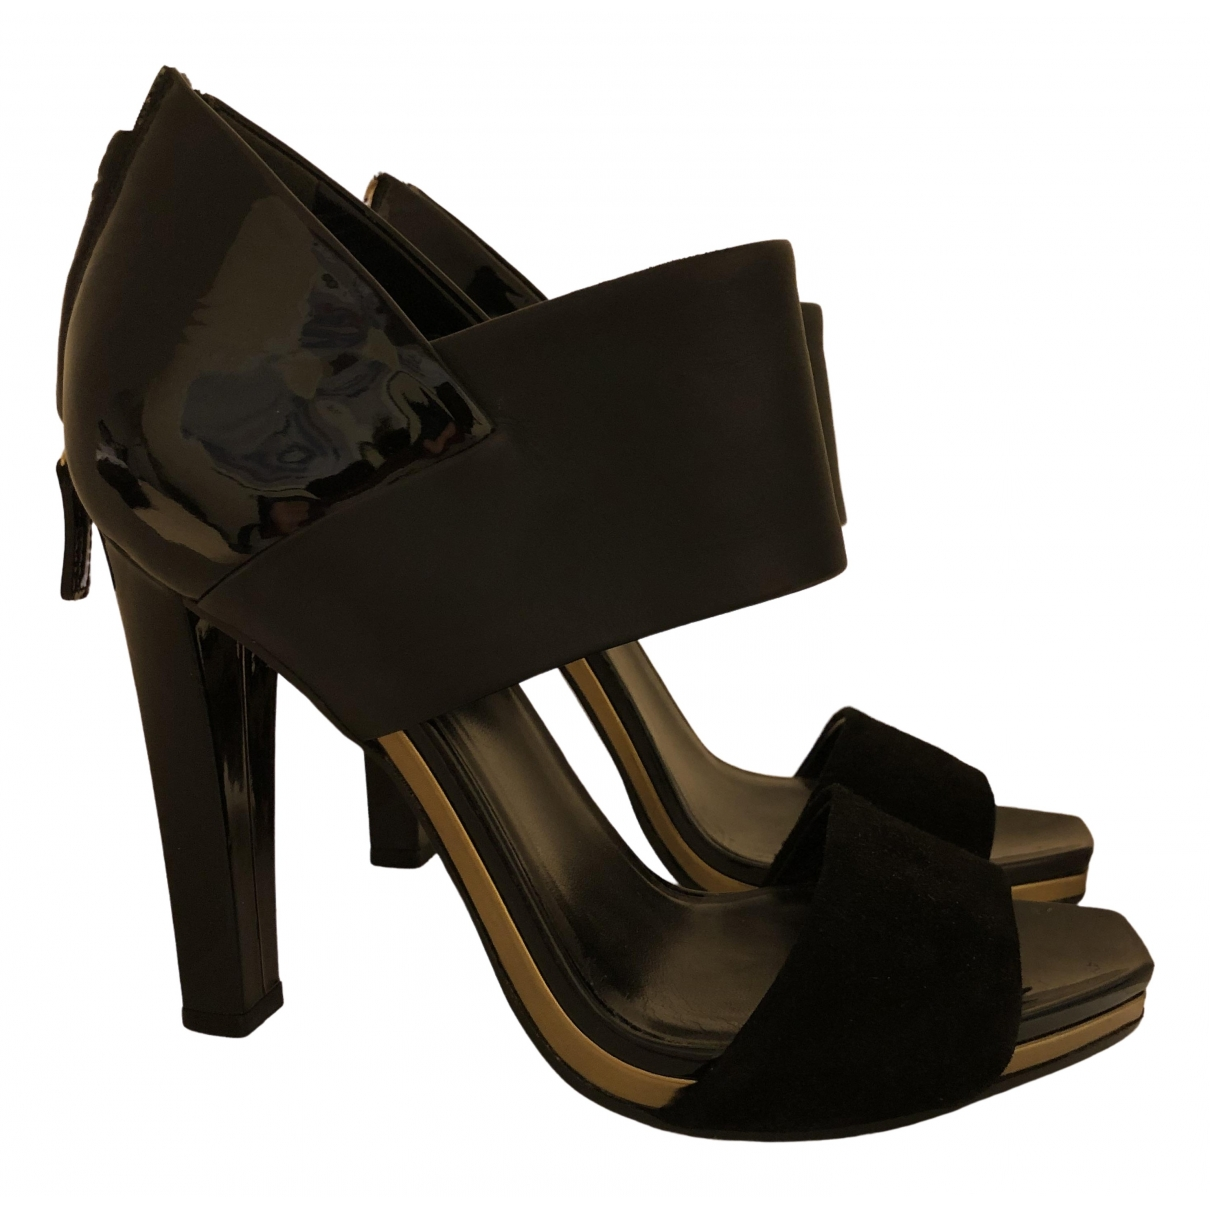 Gucci \N Black Patent leather Heels for Women 38 EU